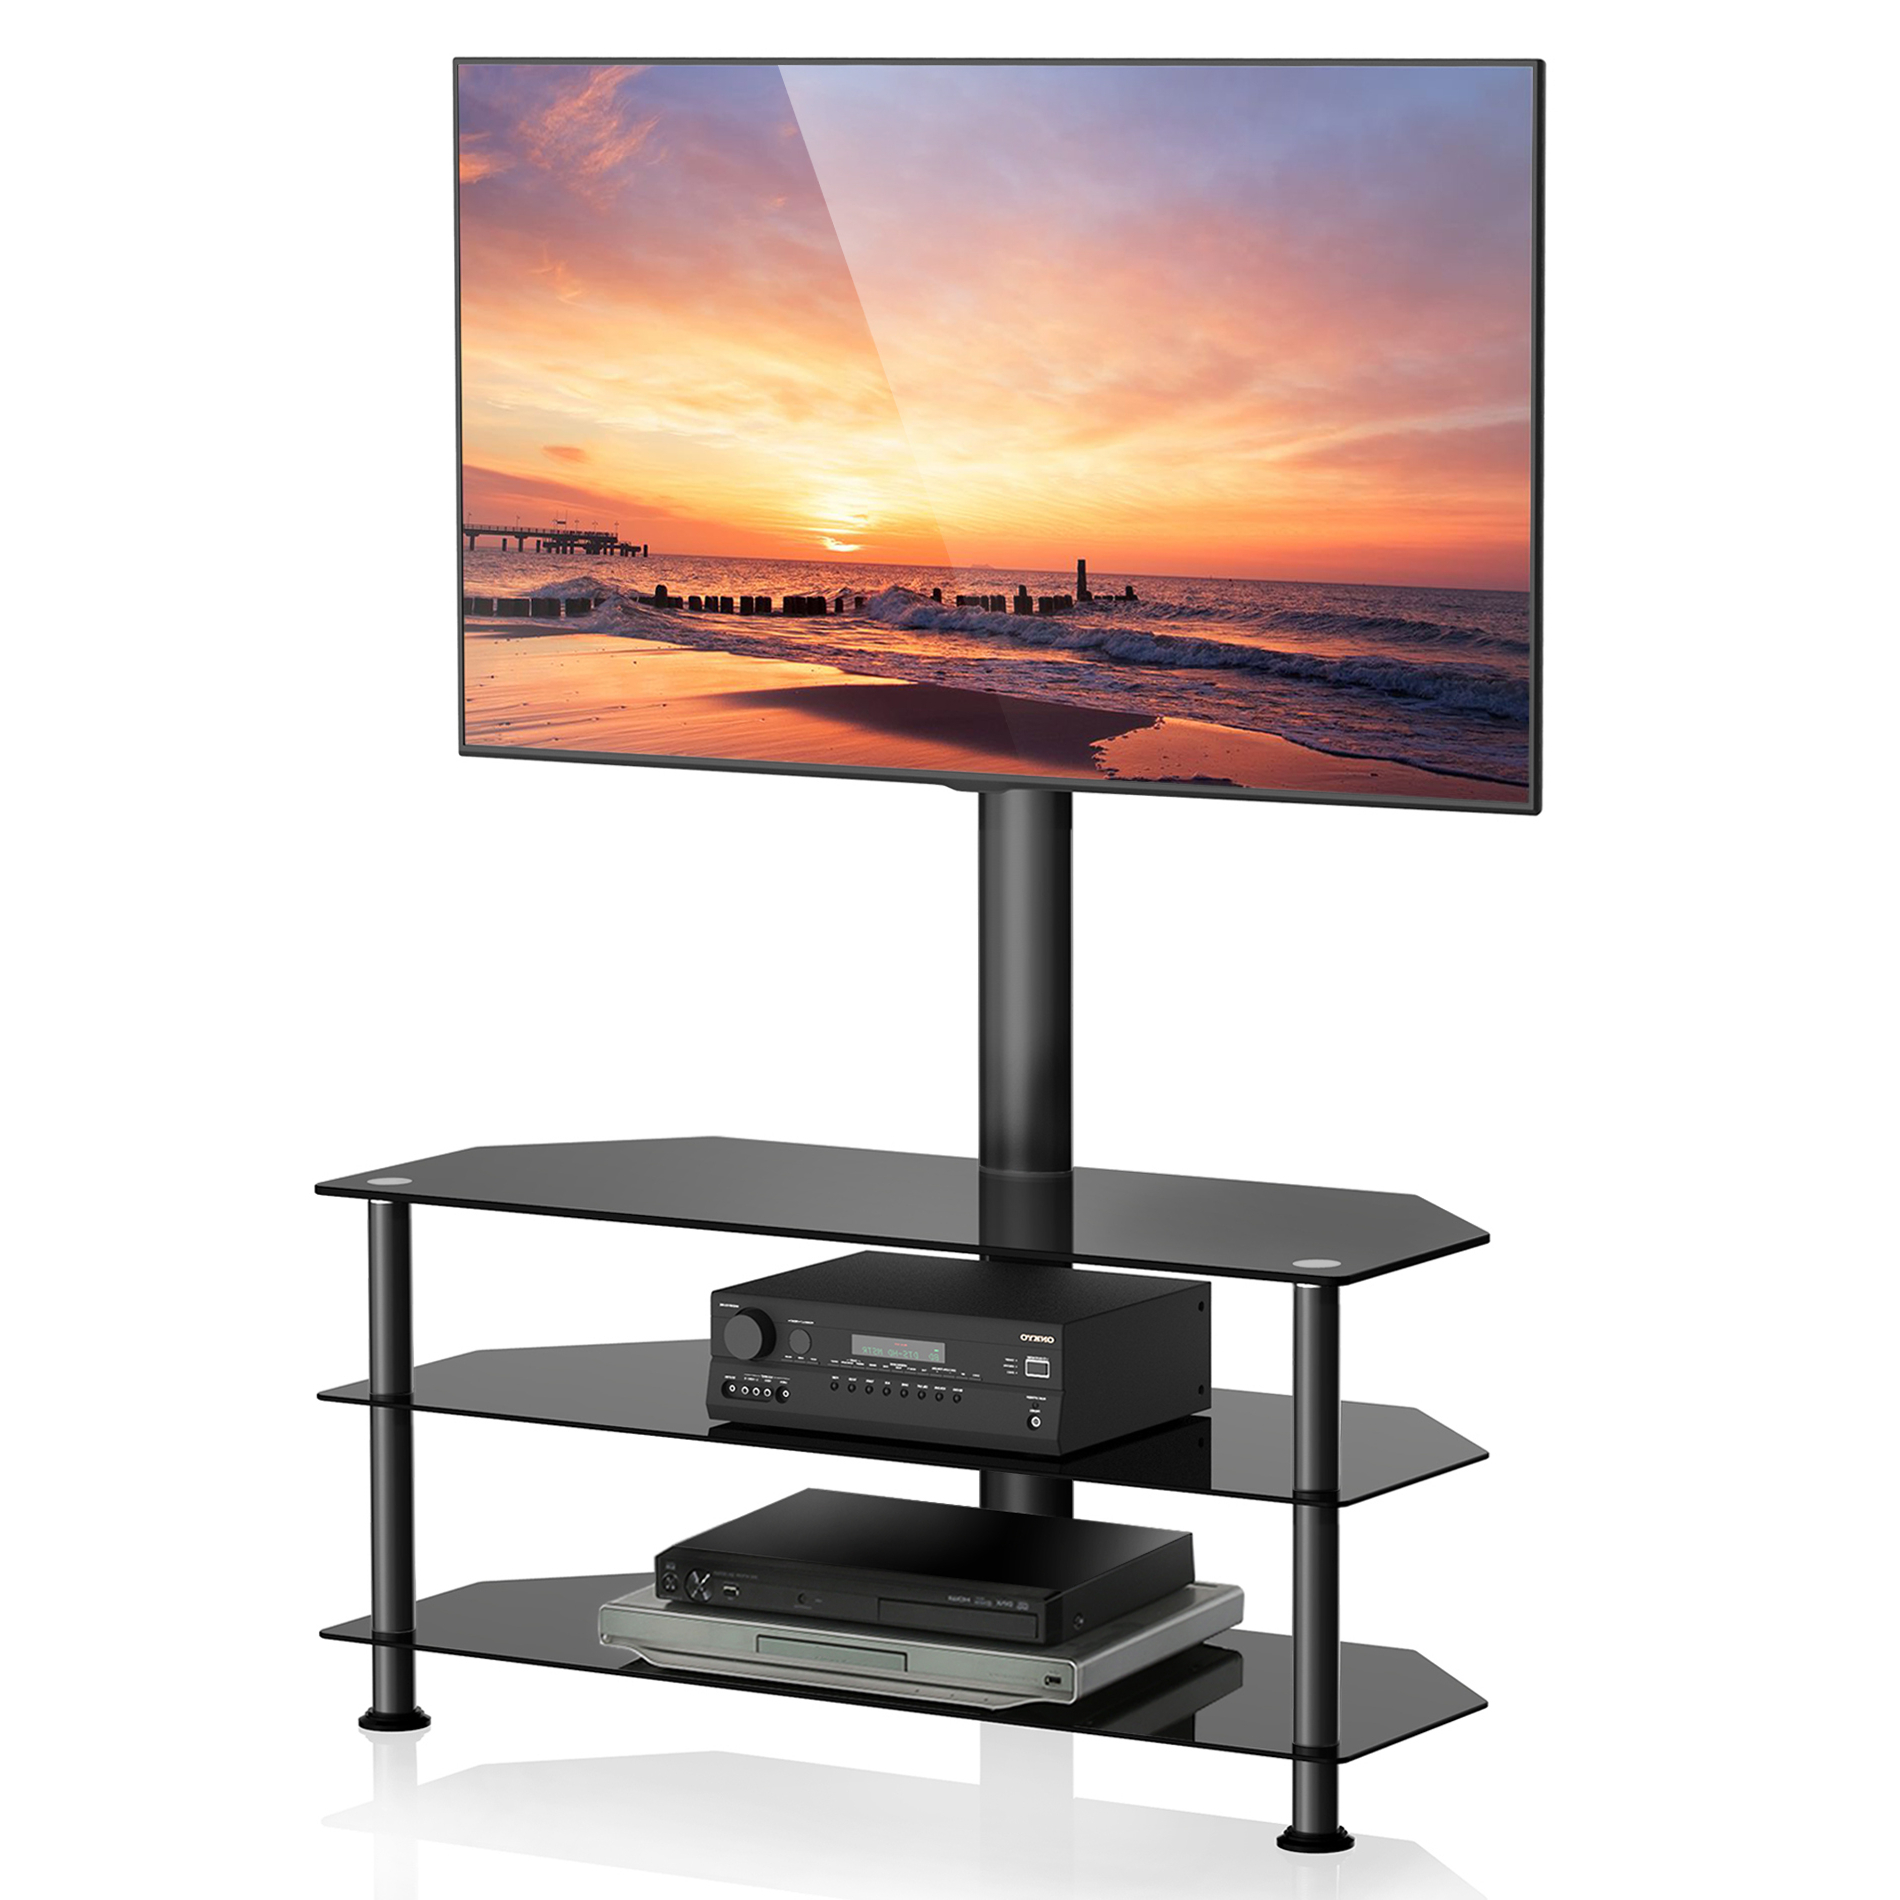 Fitueyes Swivel Mount Floor Tv Stand , Height Adjustable Intended For Modern Floor Tv Stands With Swivel Metal Mount (View 2 of 20)